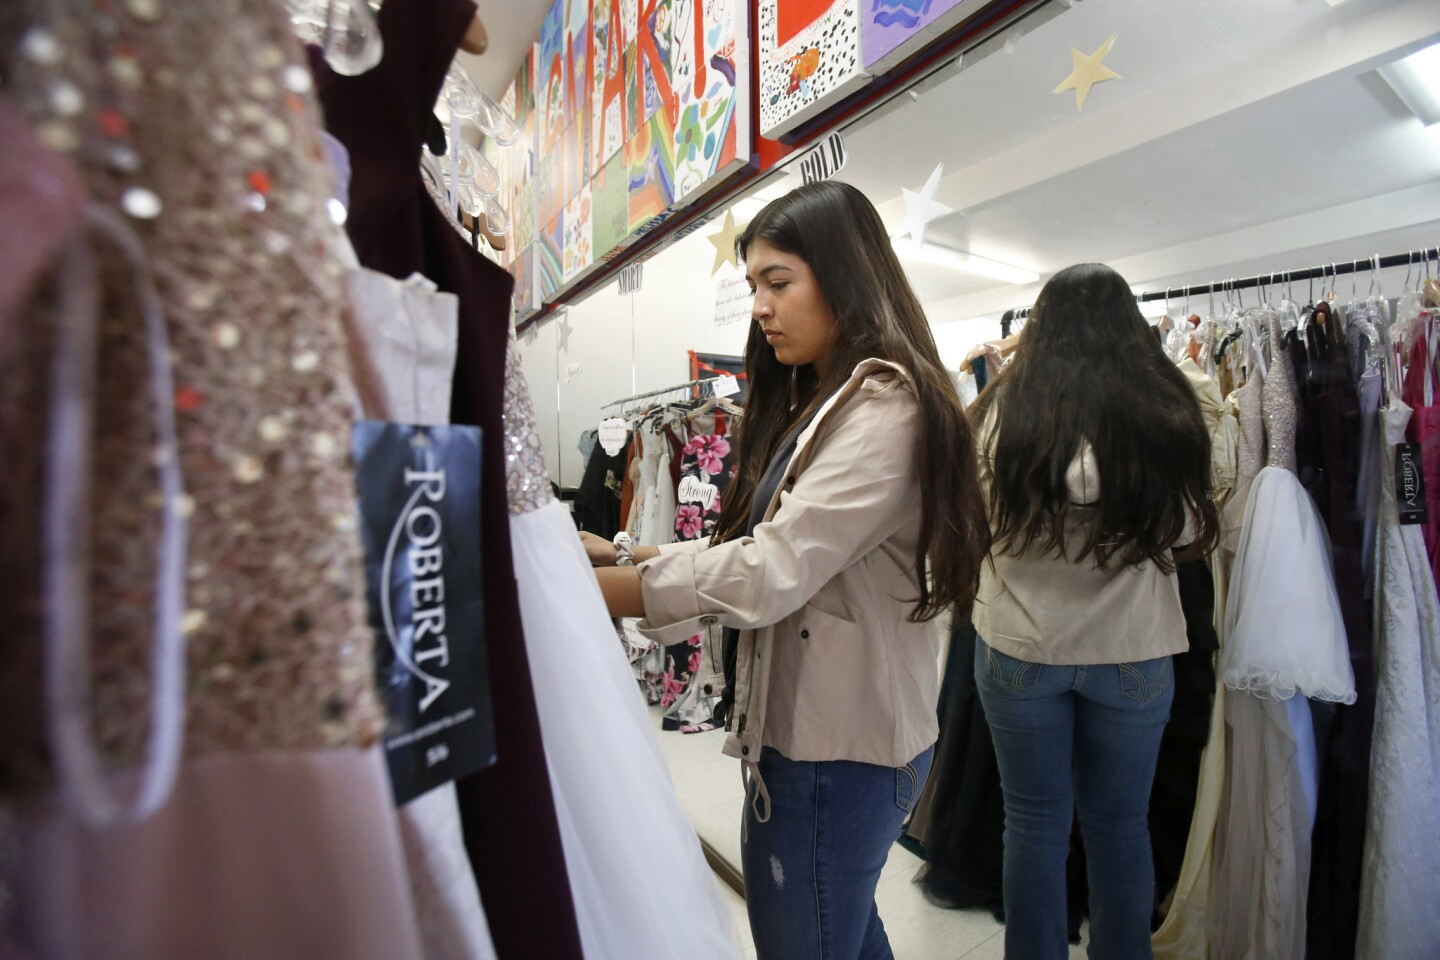 Photo gallery: High school girls get prepped for prom at Girls Inc. in Costa Mesa